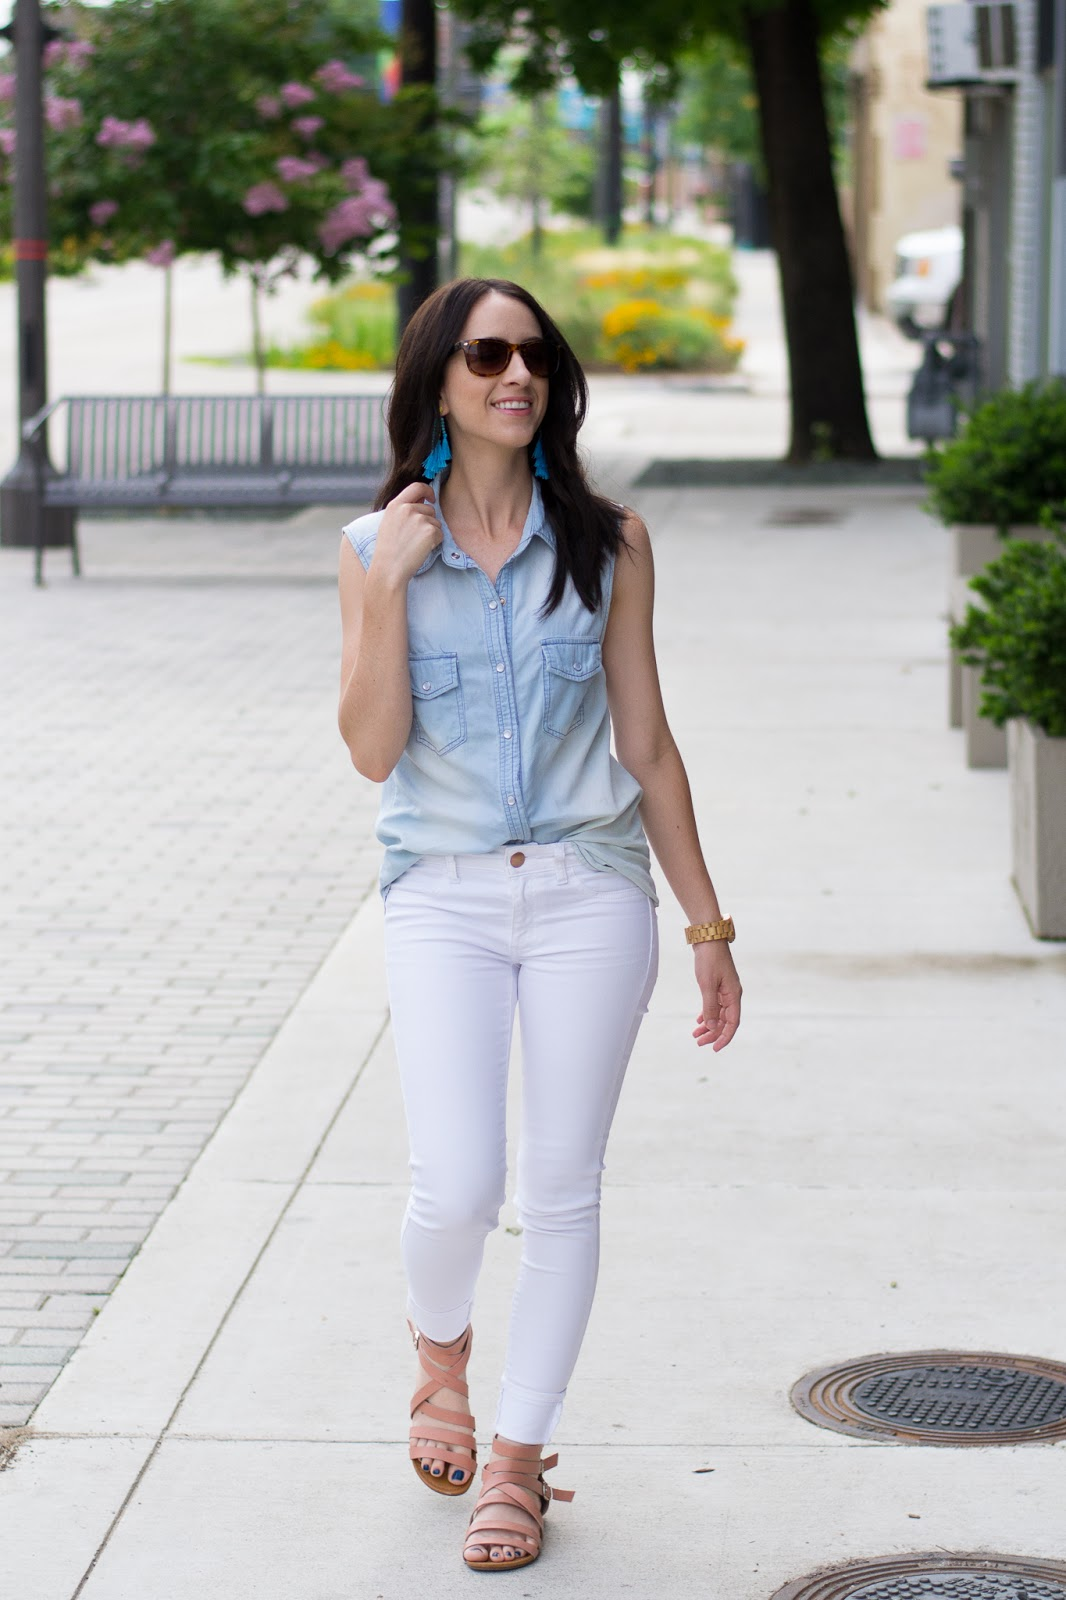 How to wear white jeans for spring and summer